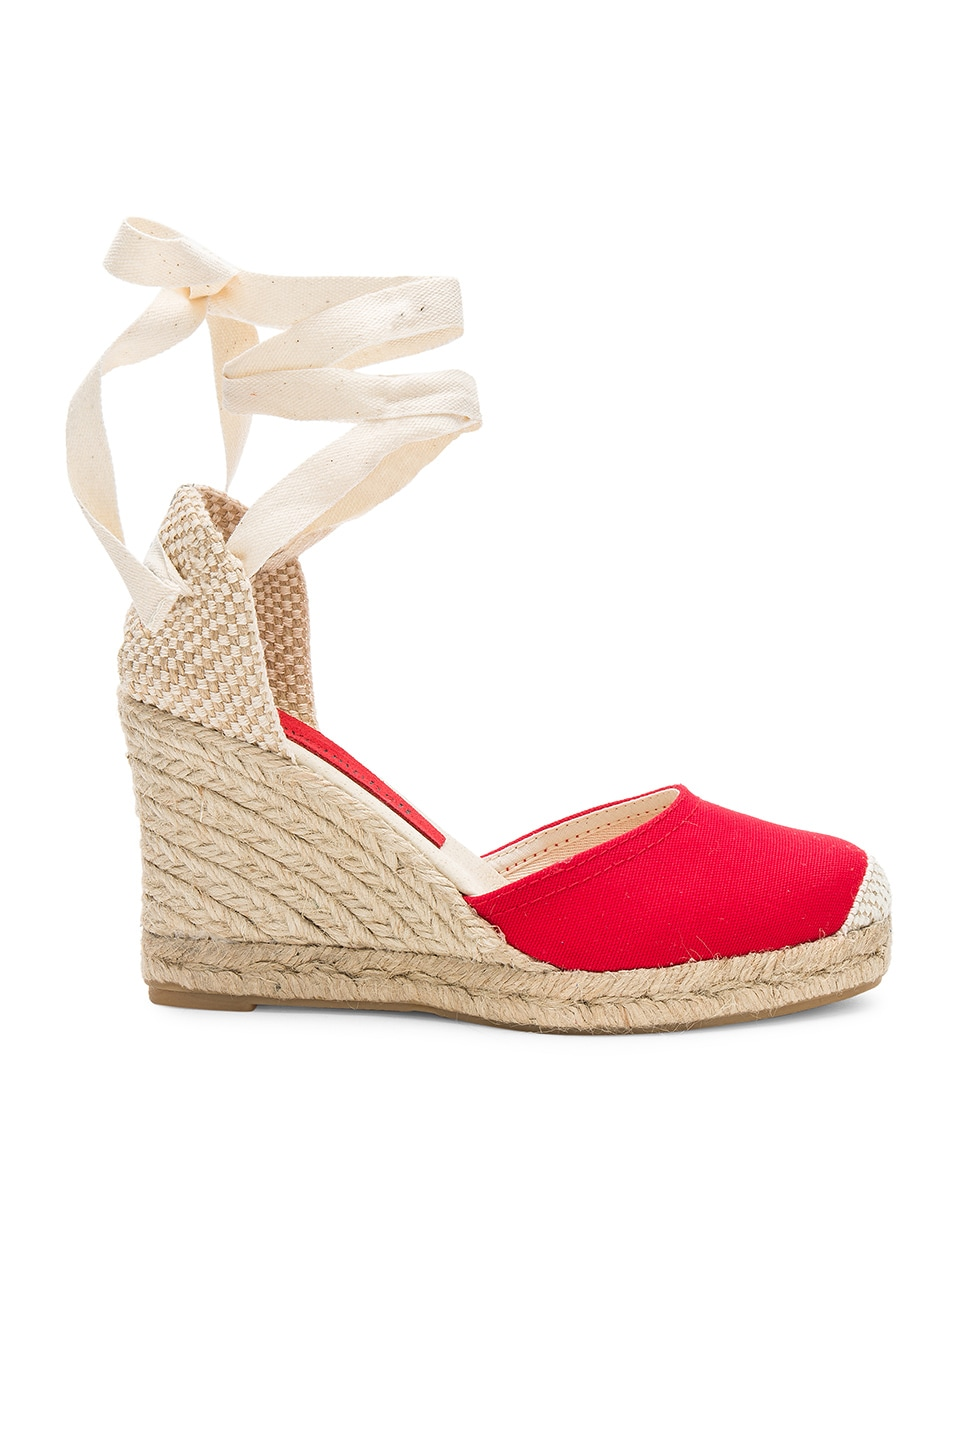 Jeffrey Campbell Adorra Sandal in Red Canvas